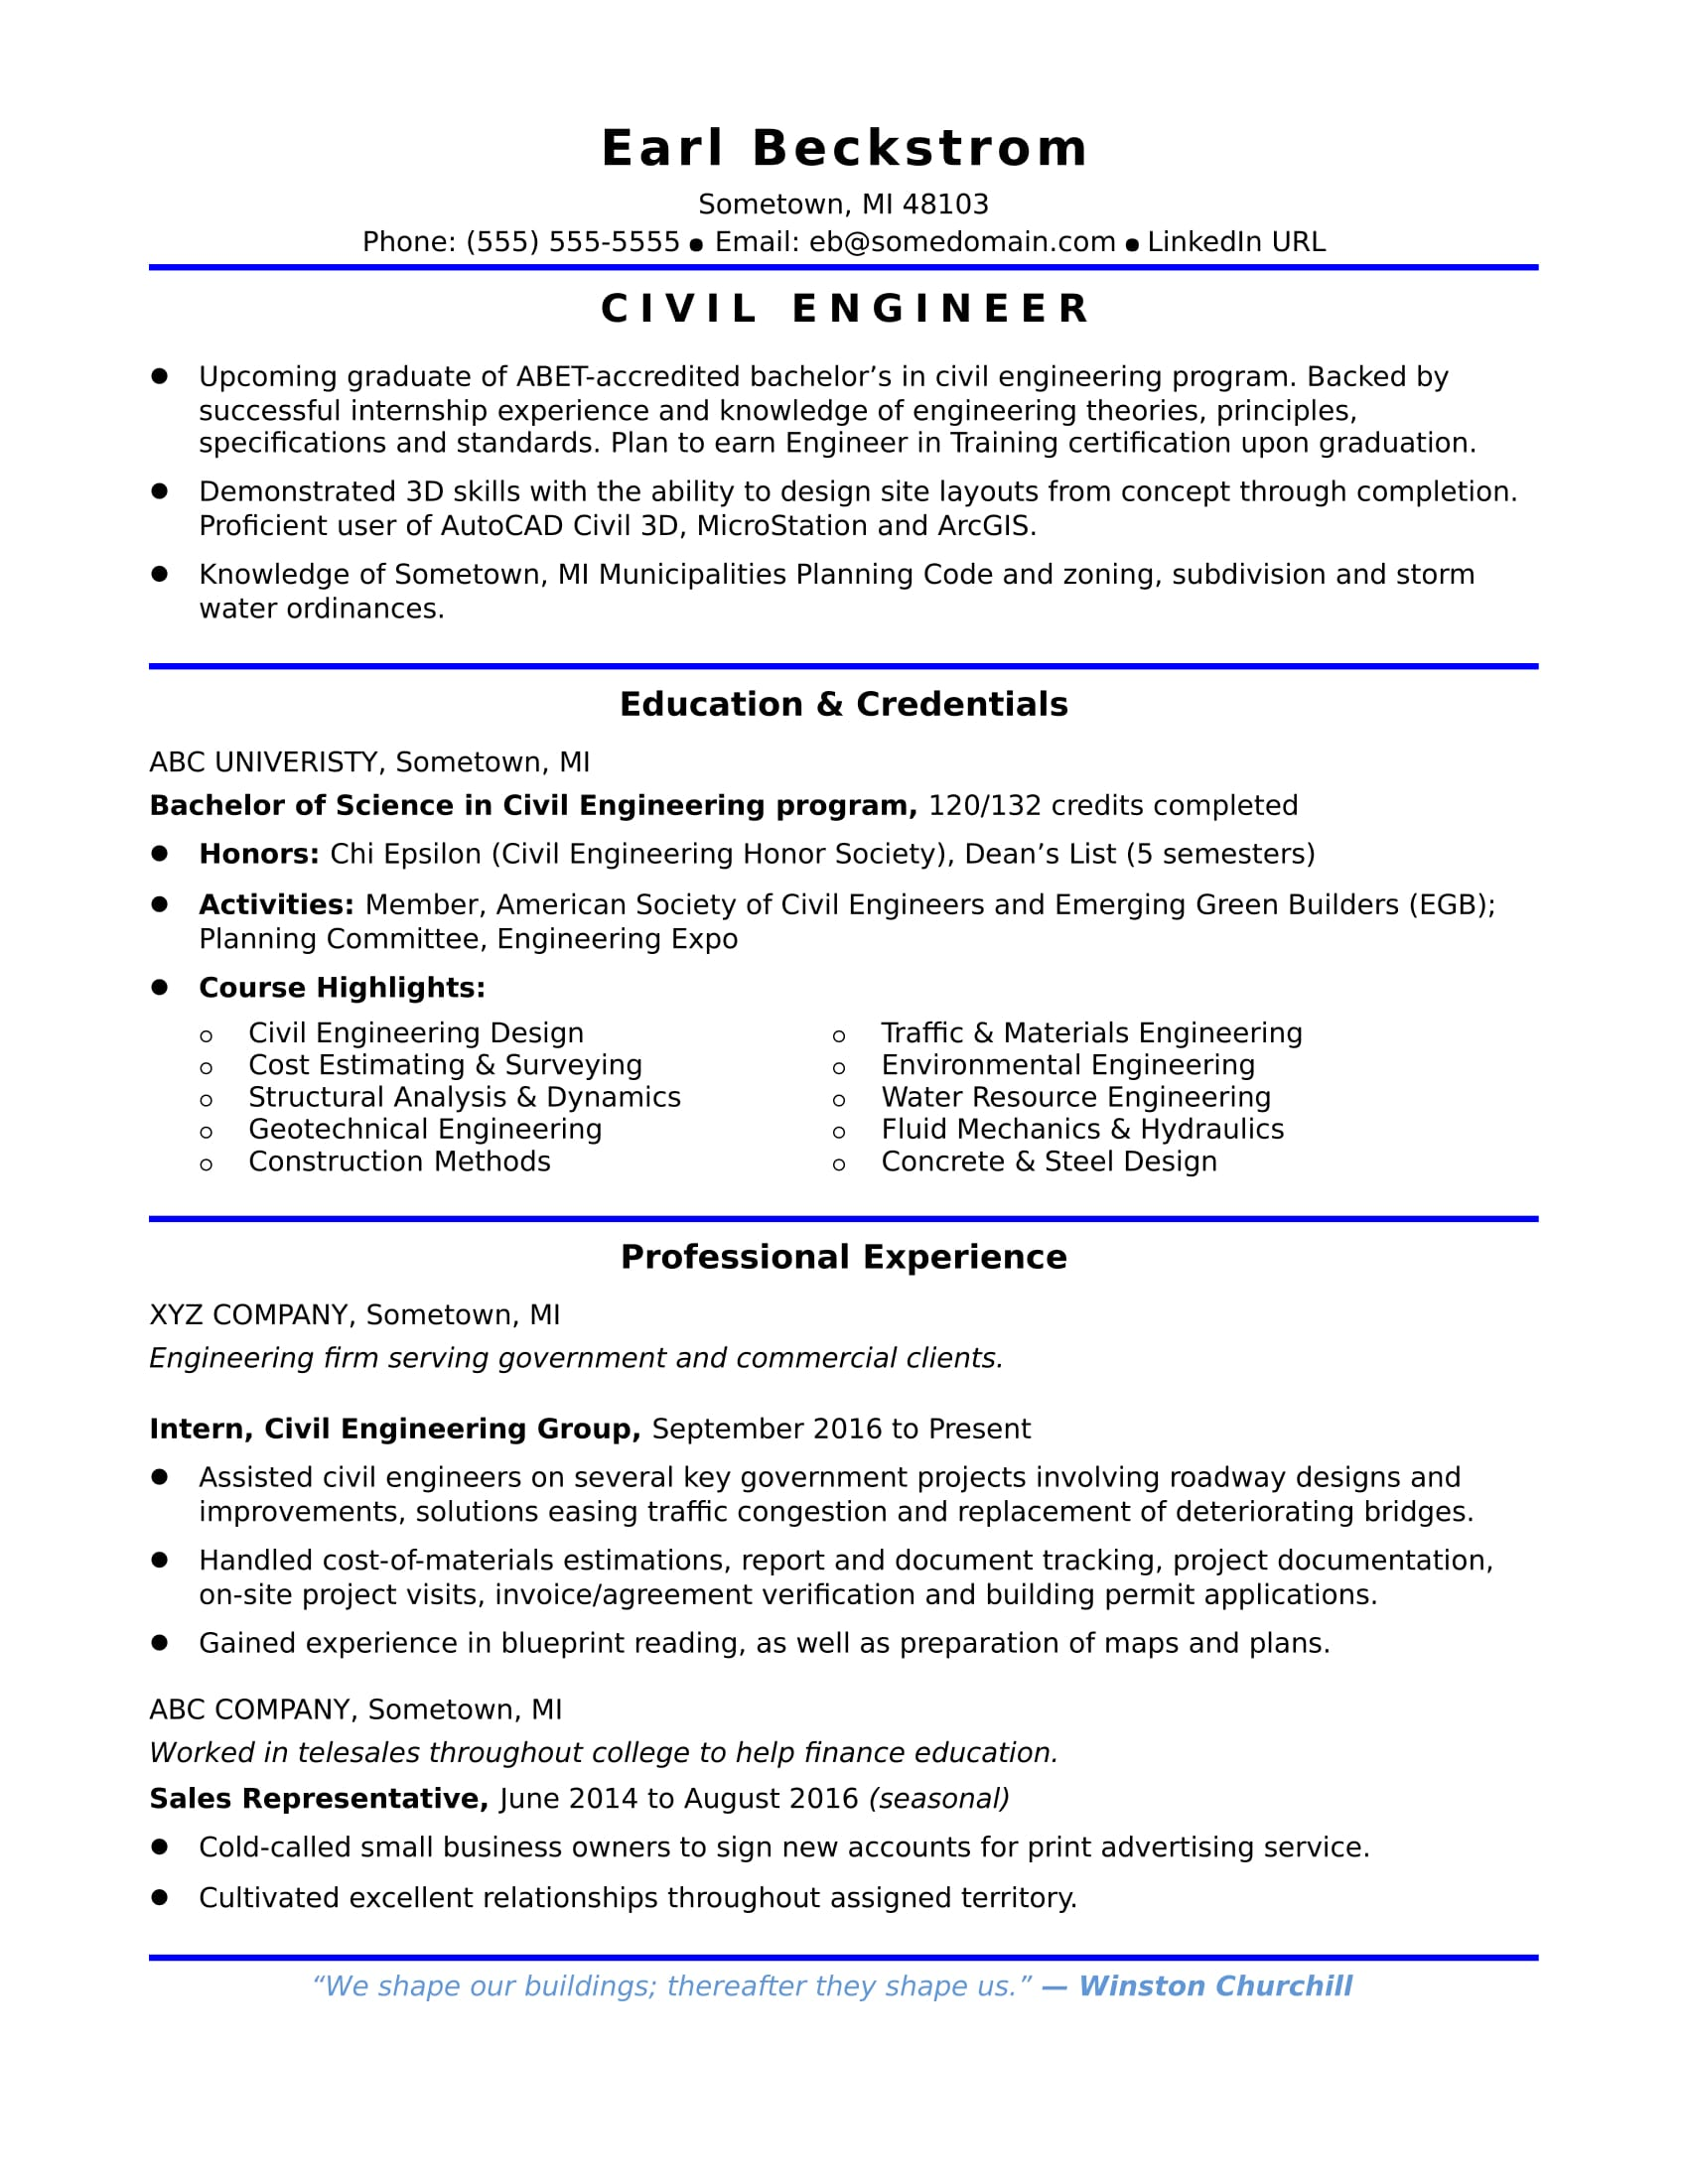 Perfect Sample Resume For An Entry Level Civil Engineer Inside Resume Civil Engineer